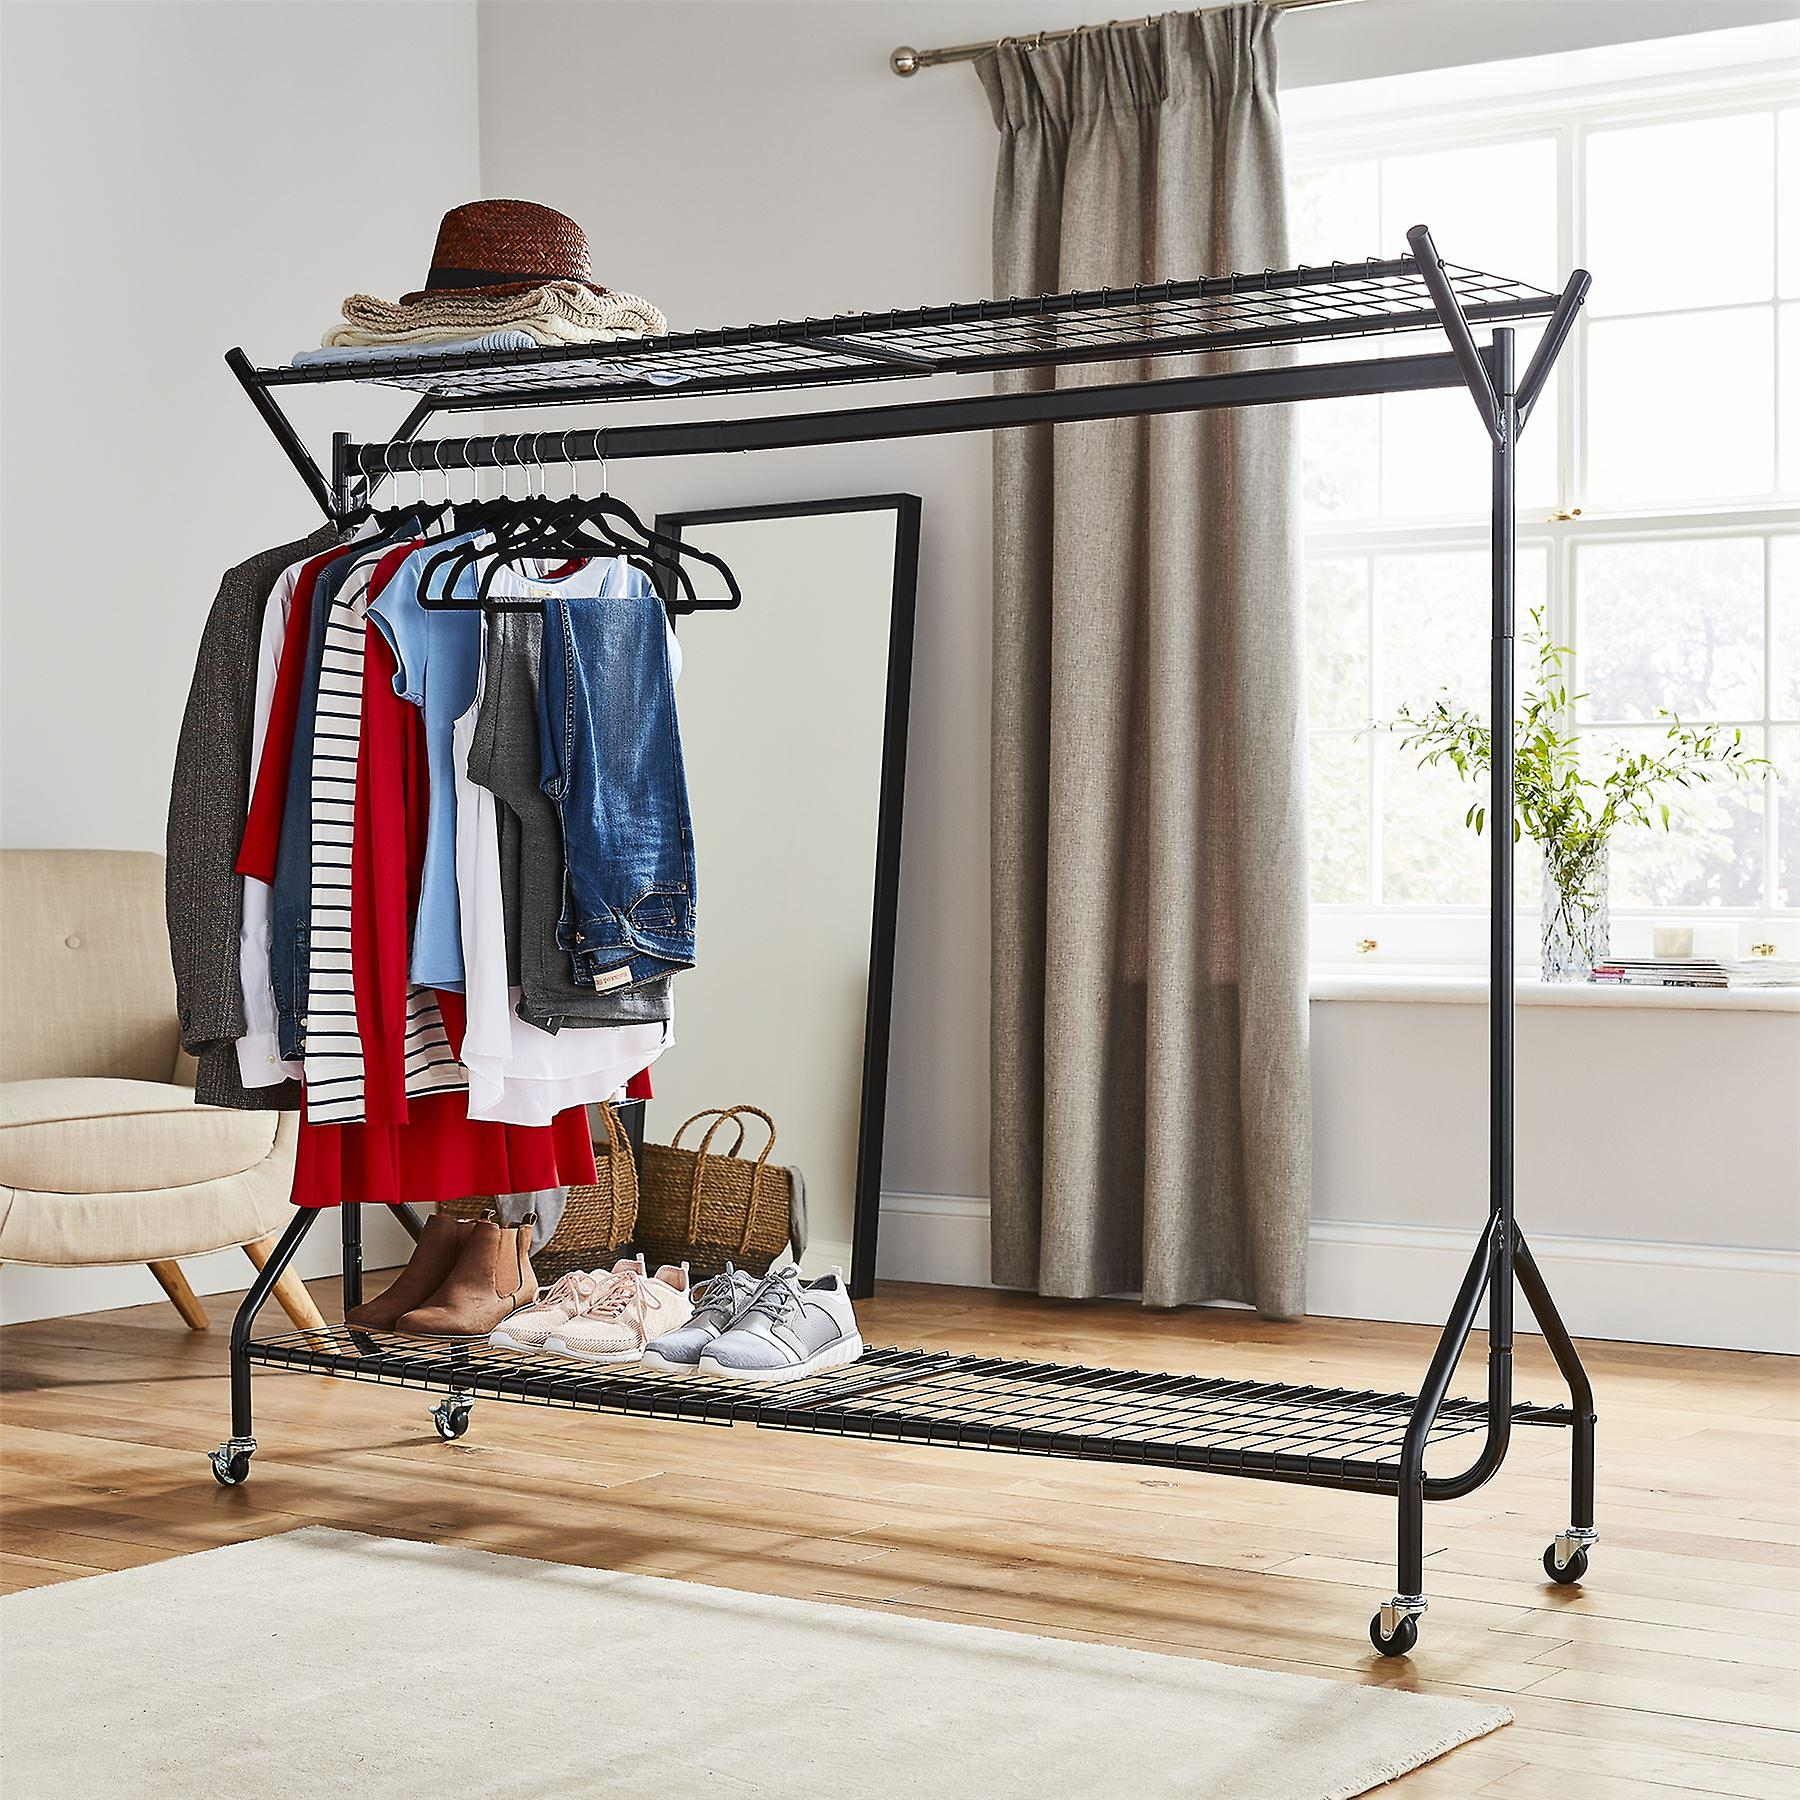 6ft long x 5ft Black Heavy Duty Hanging Clothes Garment Rail with Shoe Rack Shelf and Hat Stand